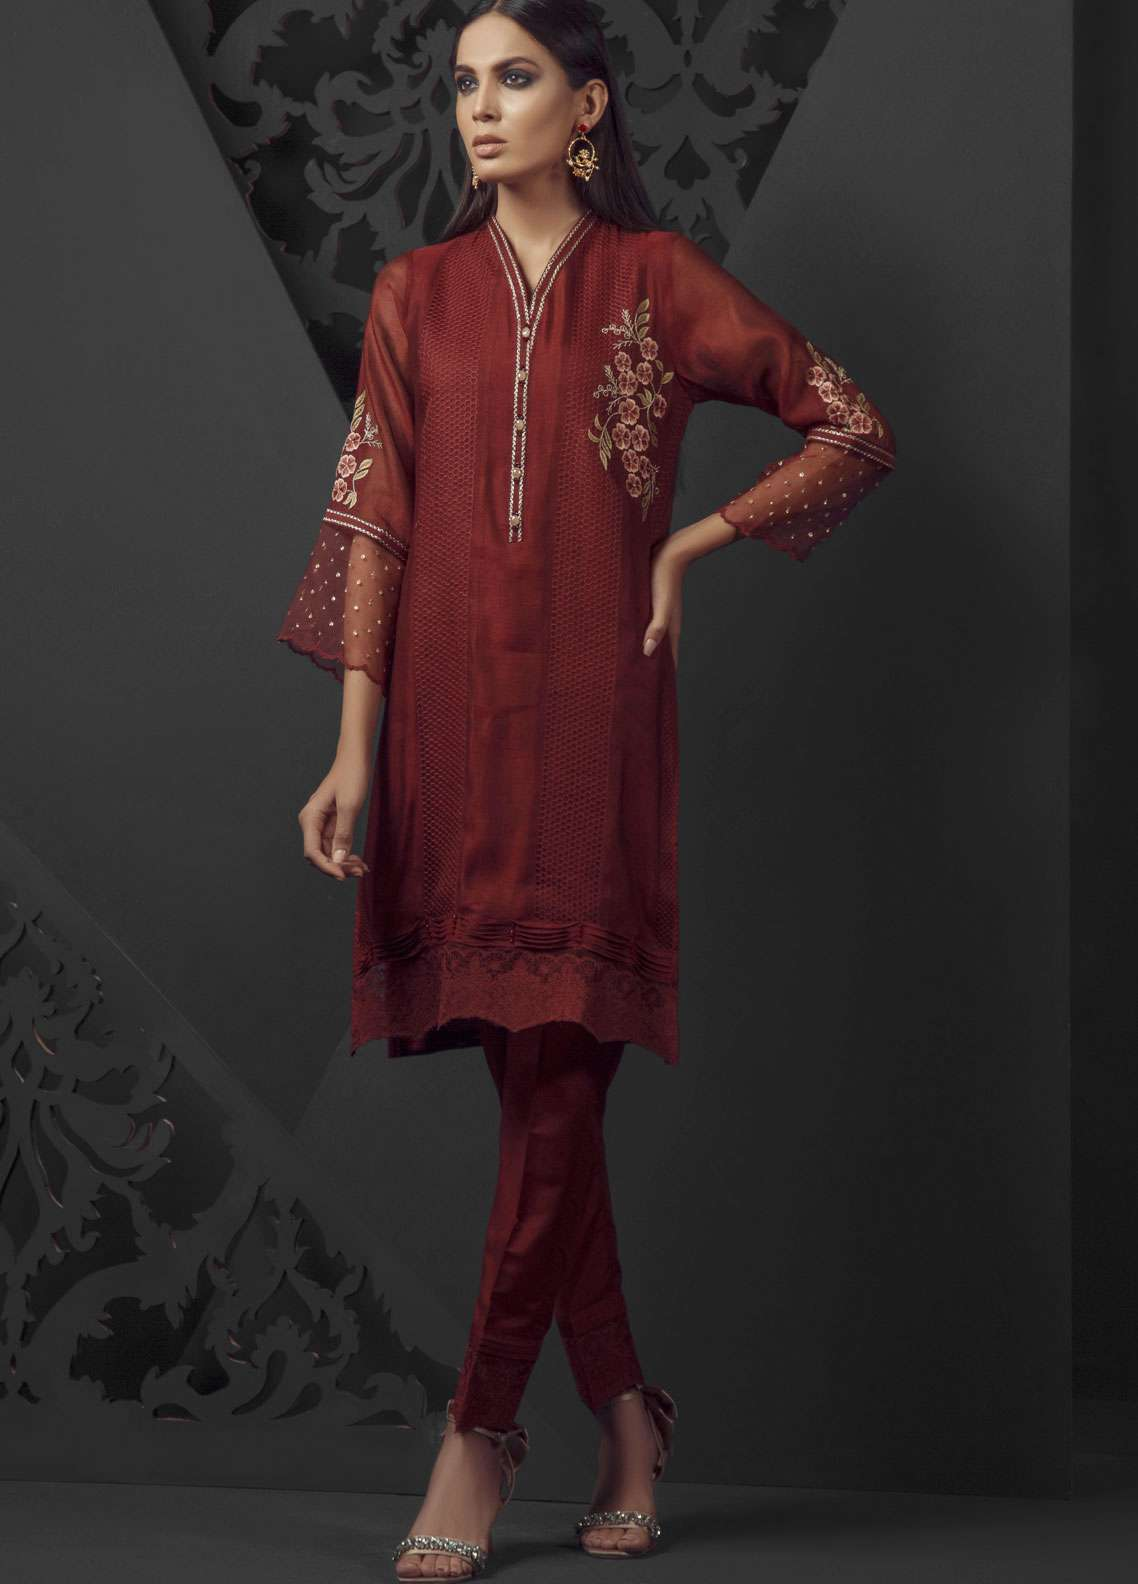 Dhanak Embroidered Cotton Net Stitched Kurtis Maroon DA-1020